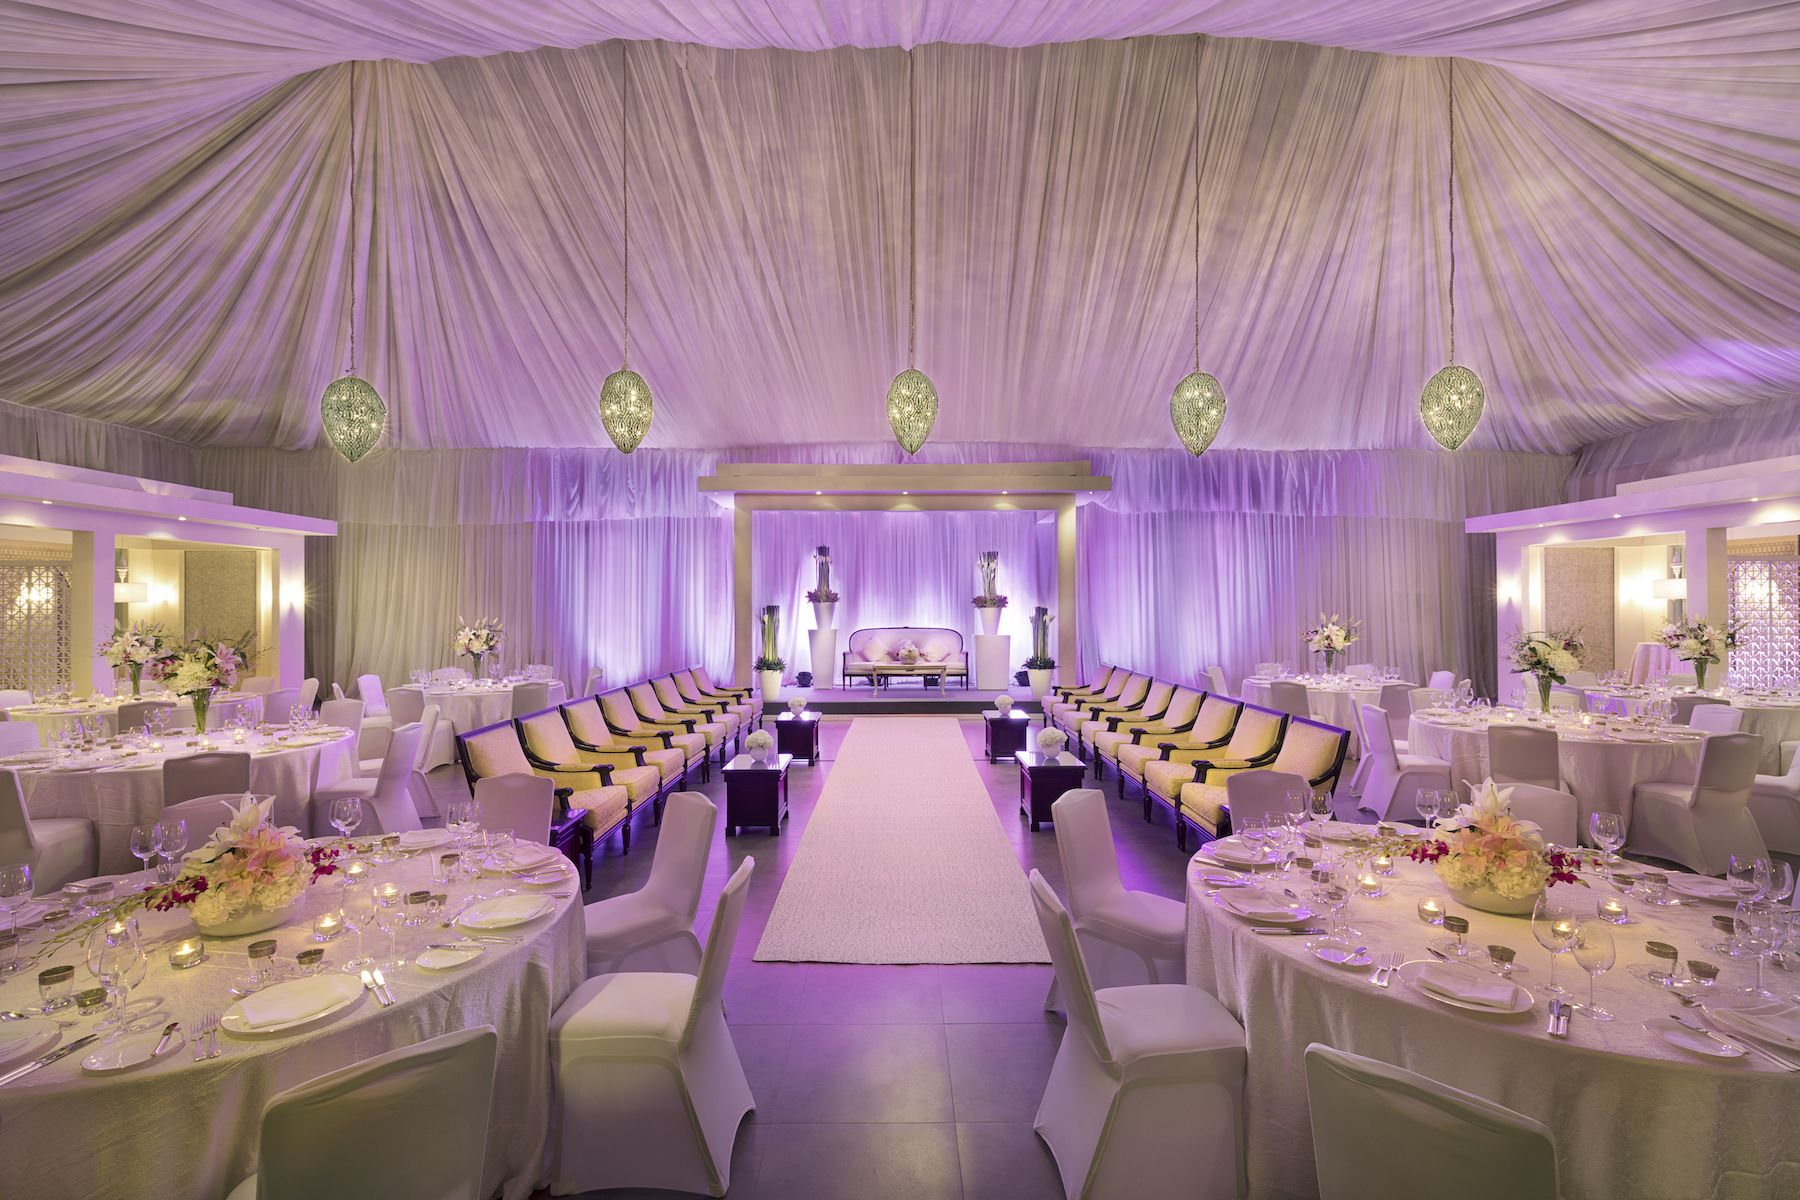 Uplighting Adds Soft Shades Of Color To A Wedding Reception In The Al Khayma Tent At Ritz Carlton Bahrain